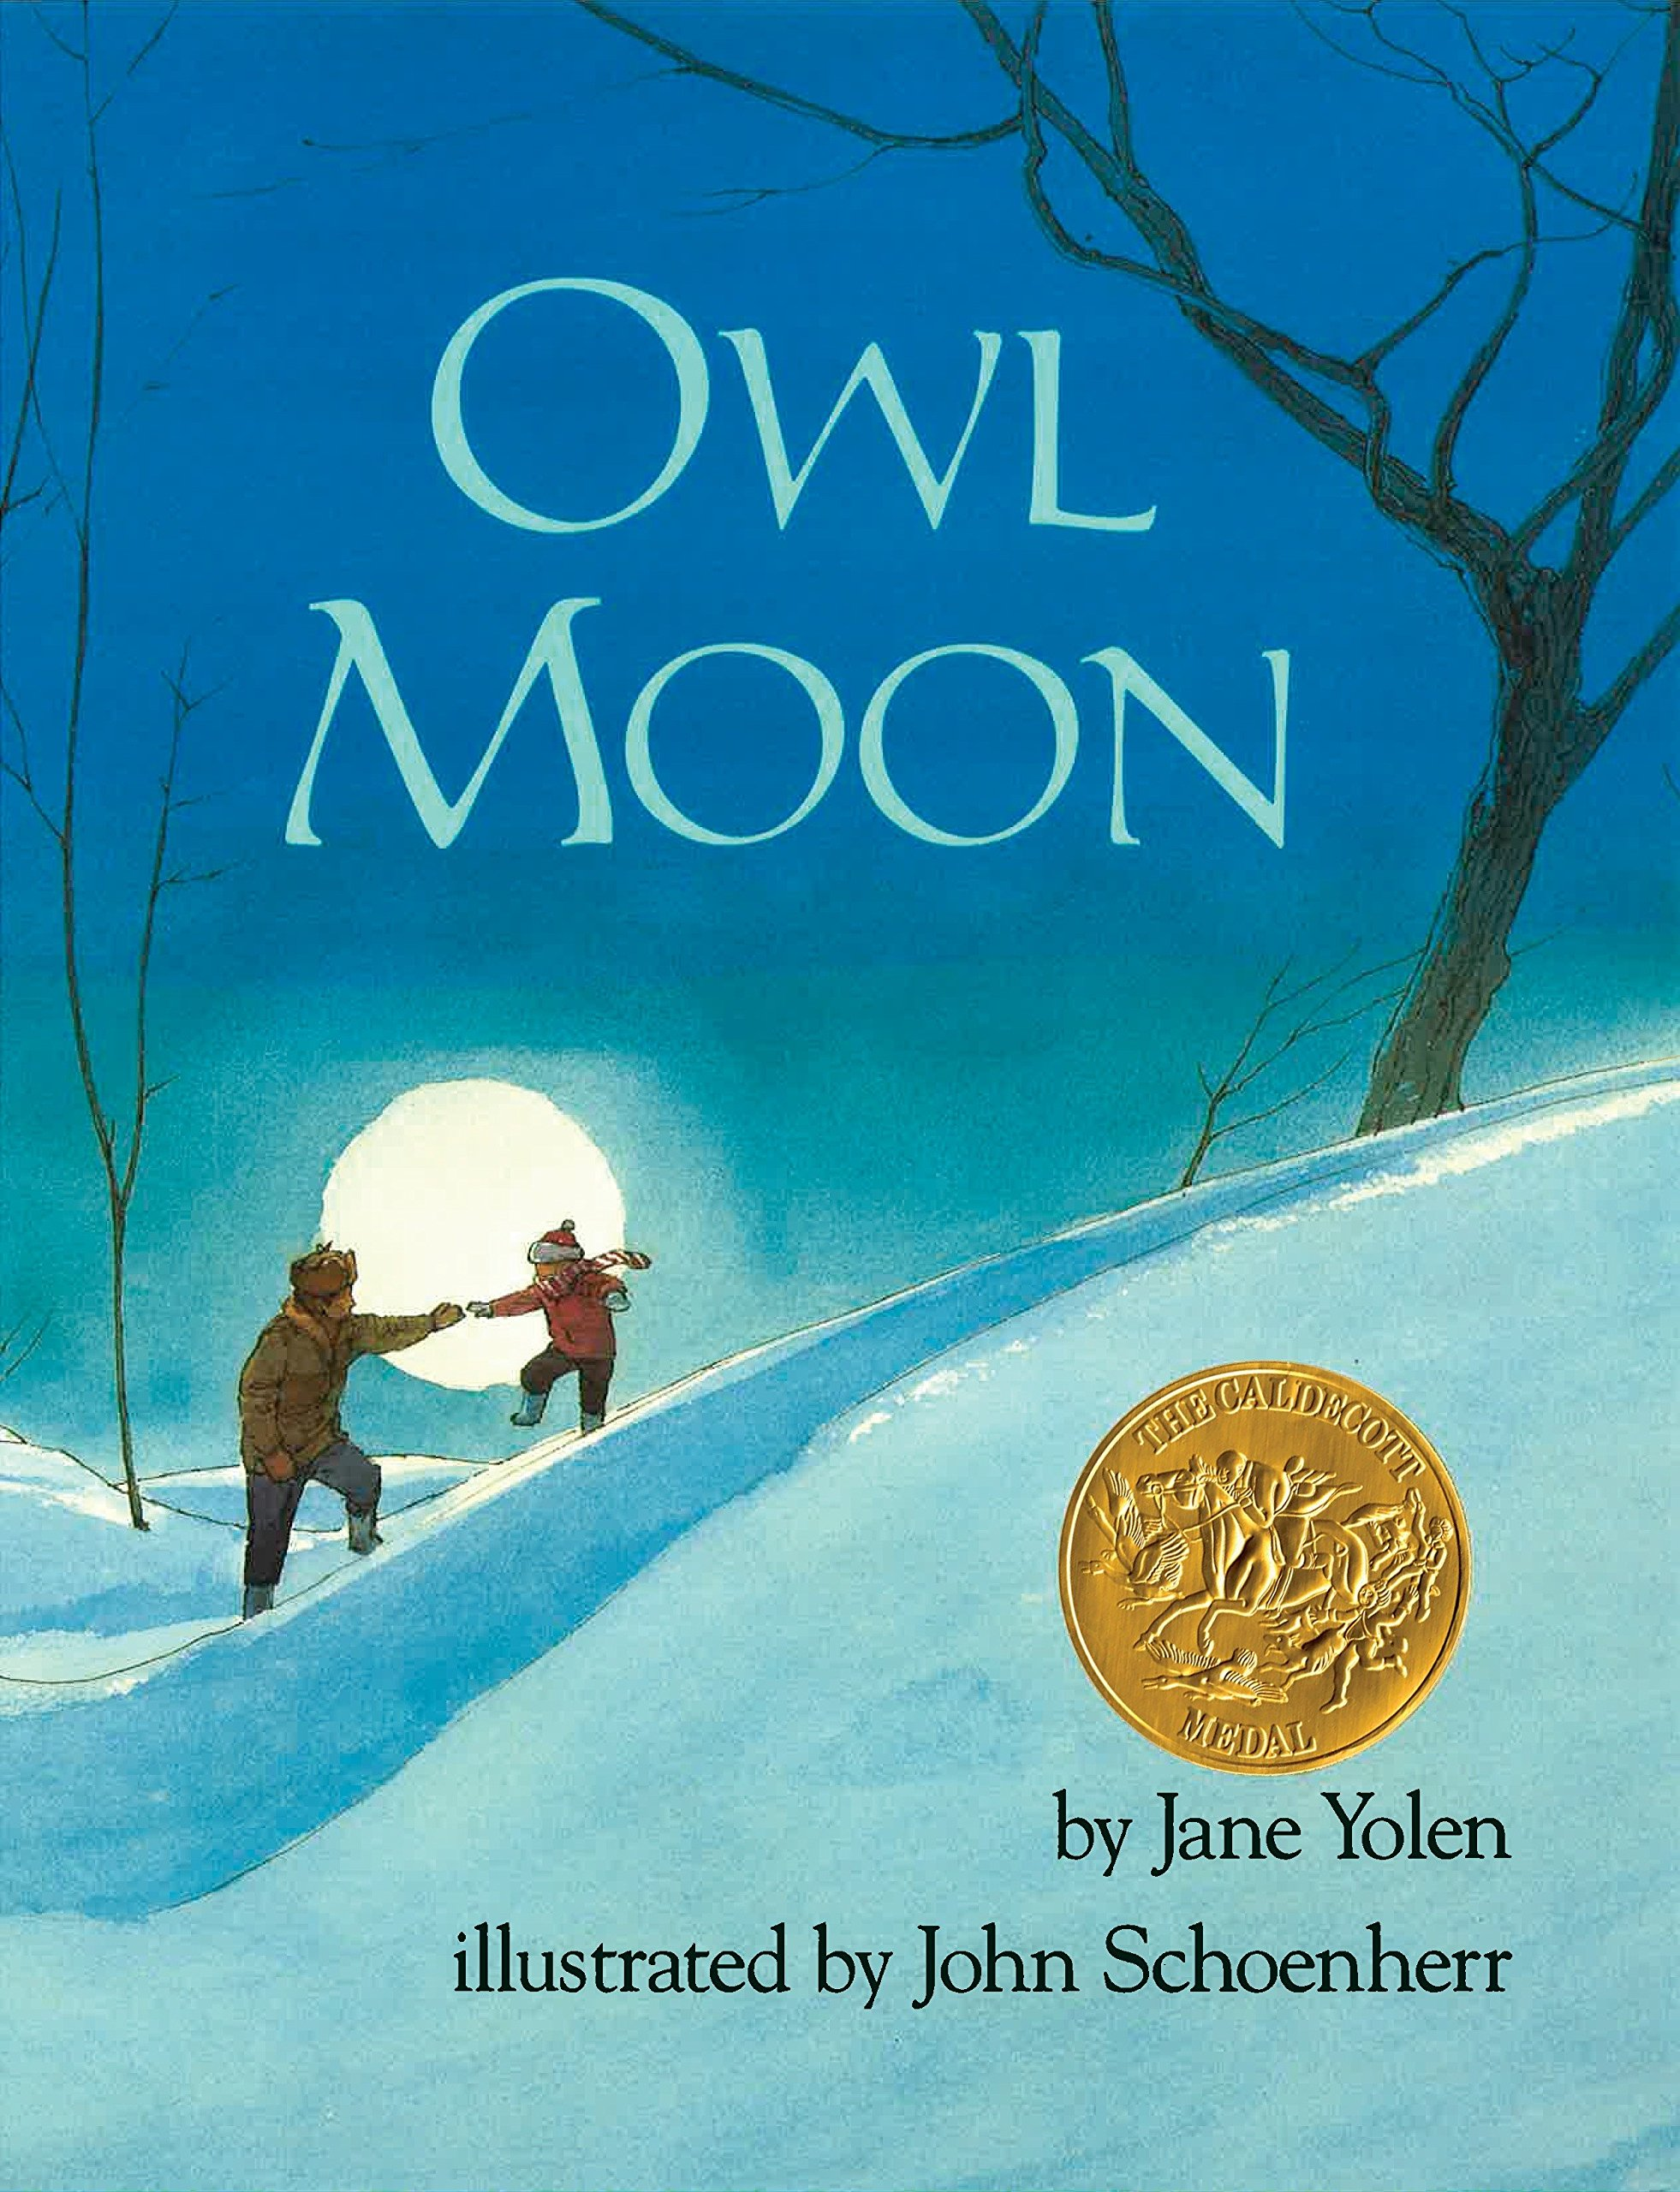 Image result for owl moon book cover